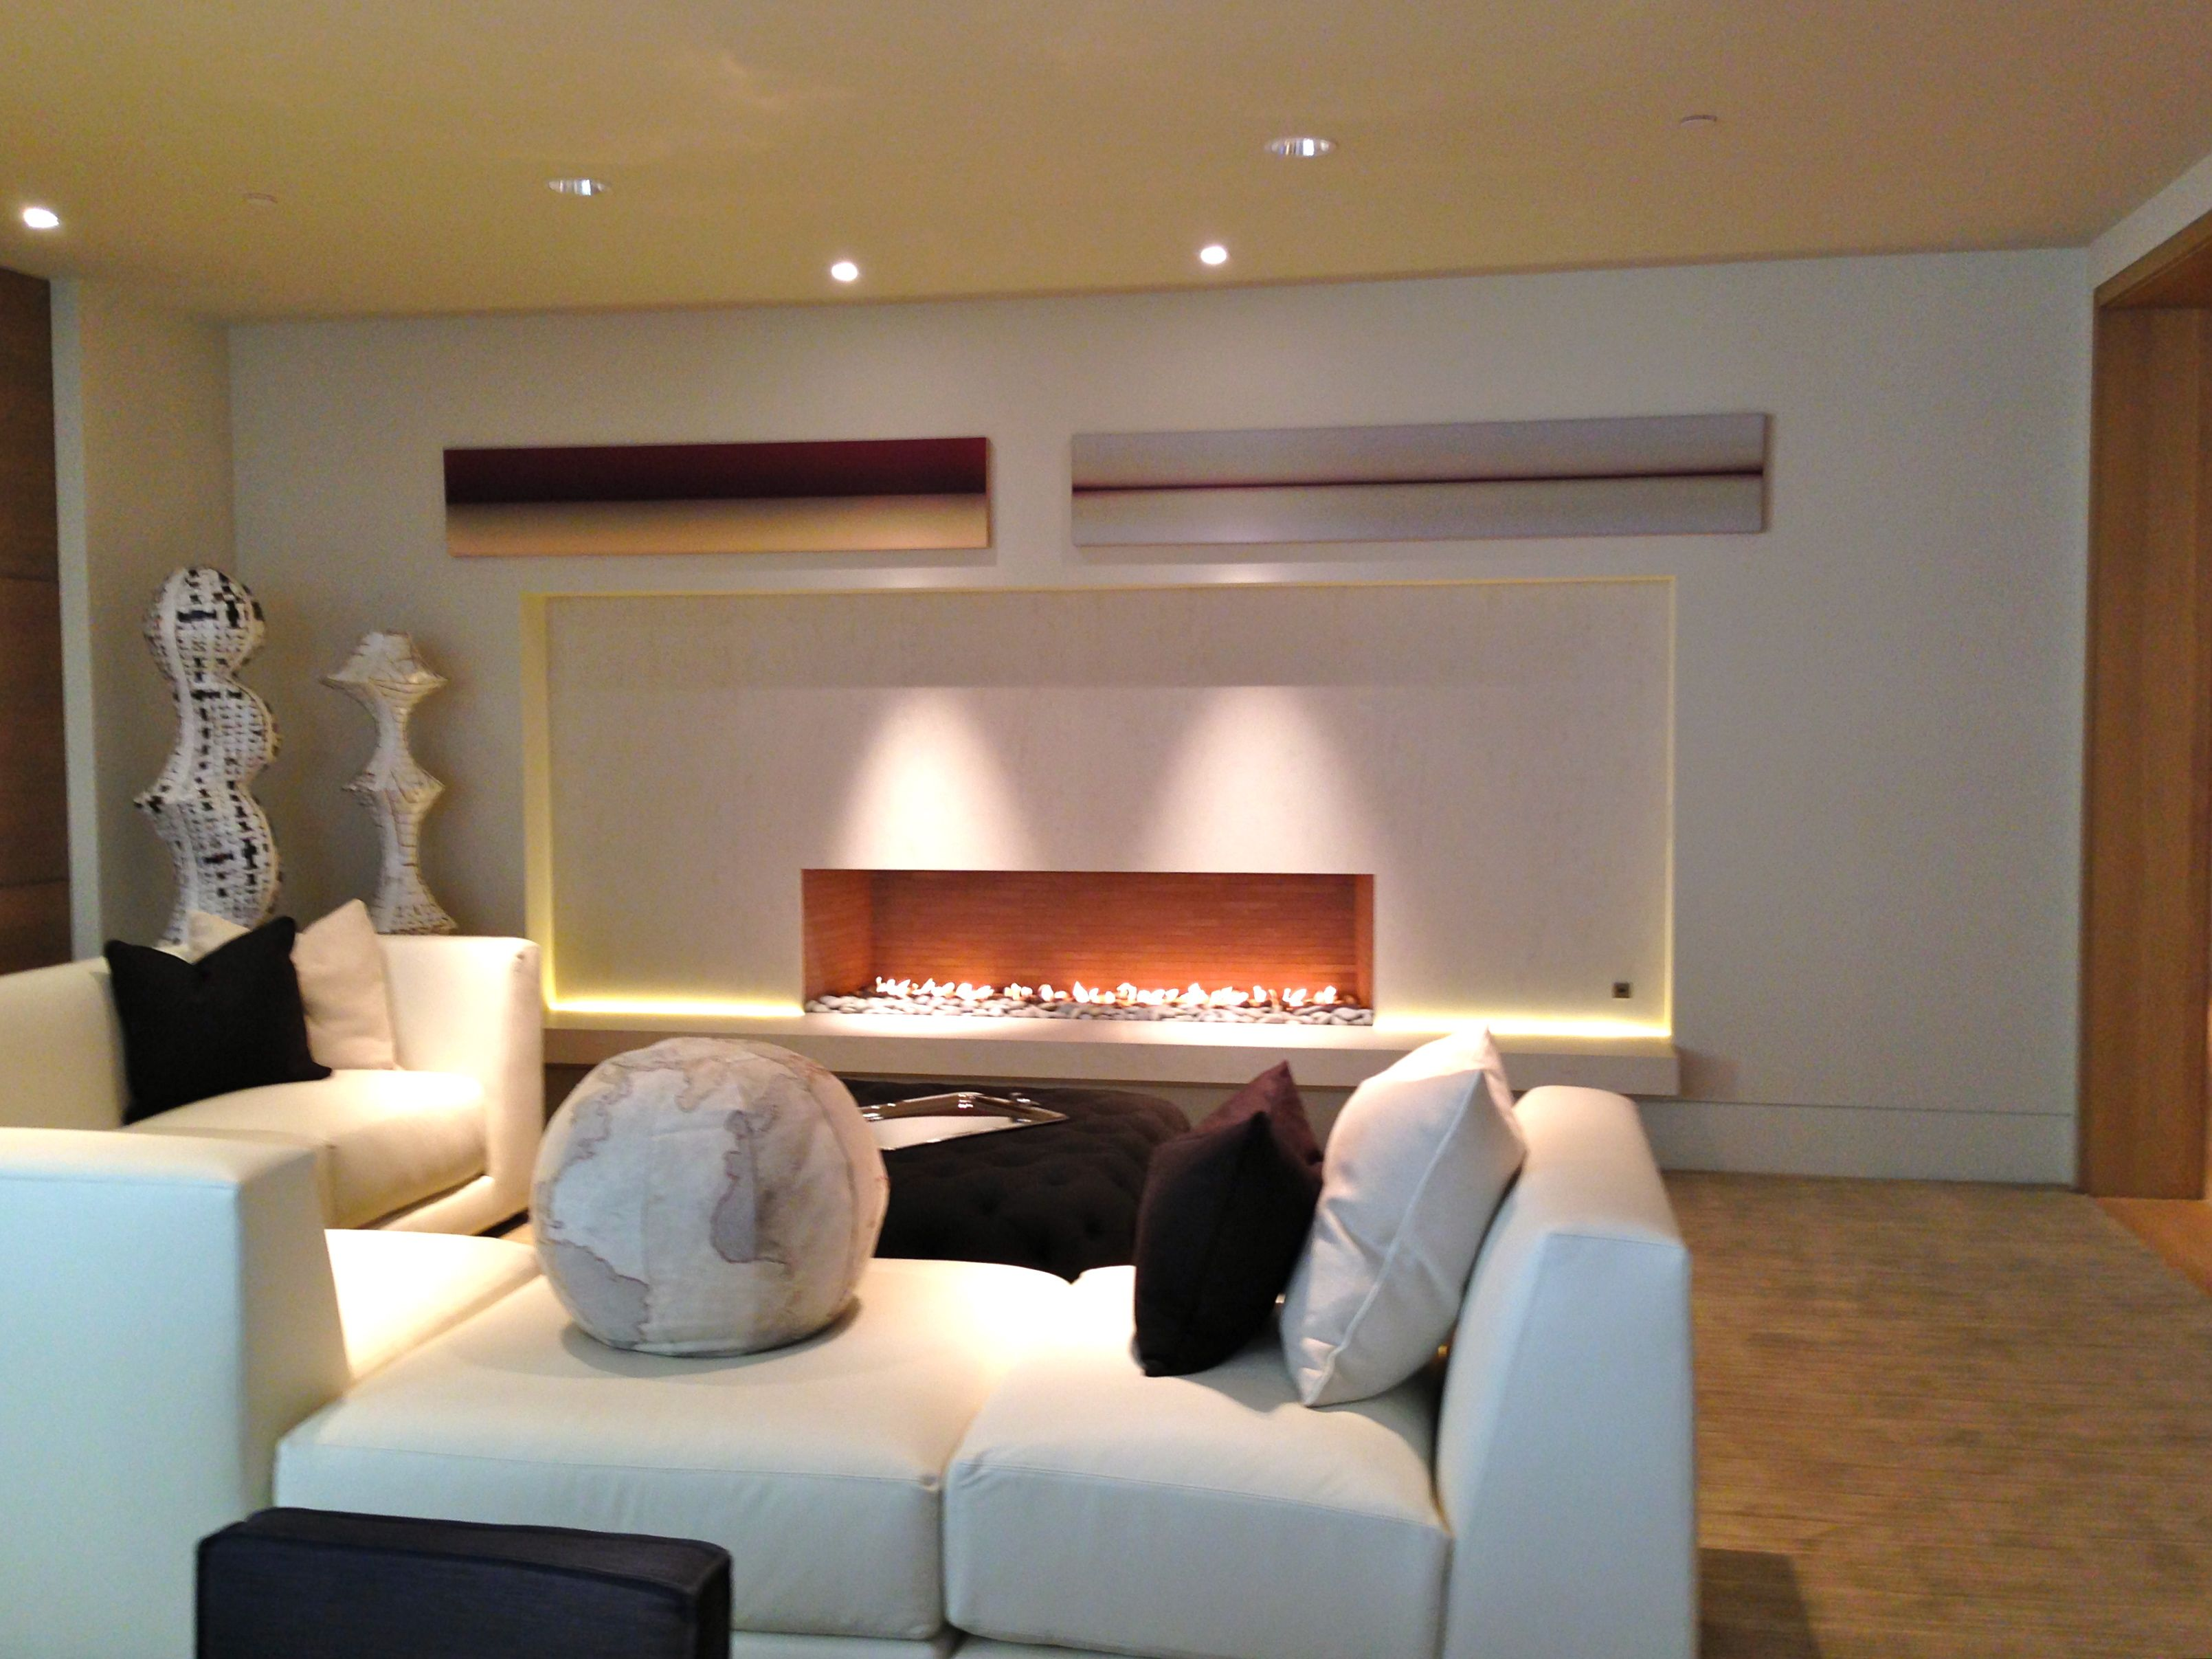 8 ft long linear open living room fireplace modern fireplaces